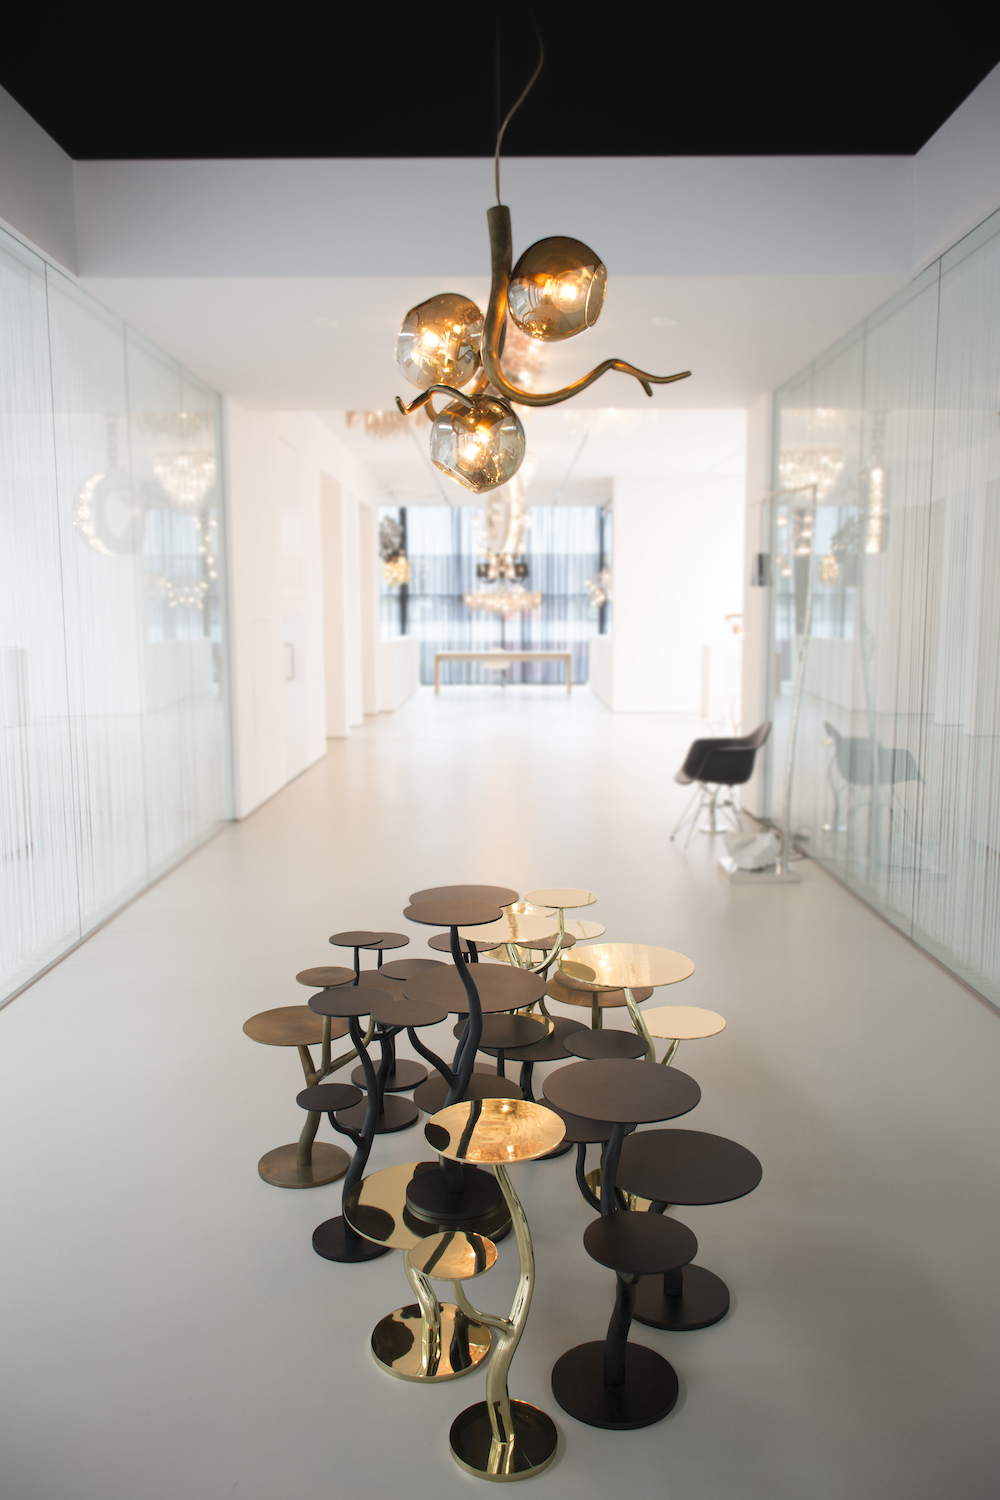 brandvanegmond_standby-blackmatt-brass-brassburnished_headquarters-naarden.jpg